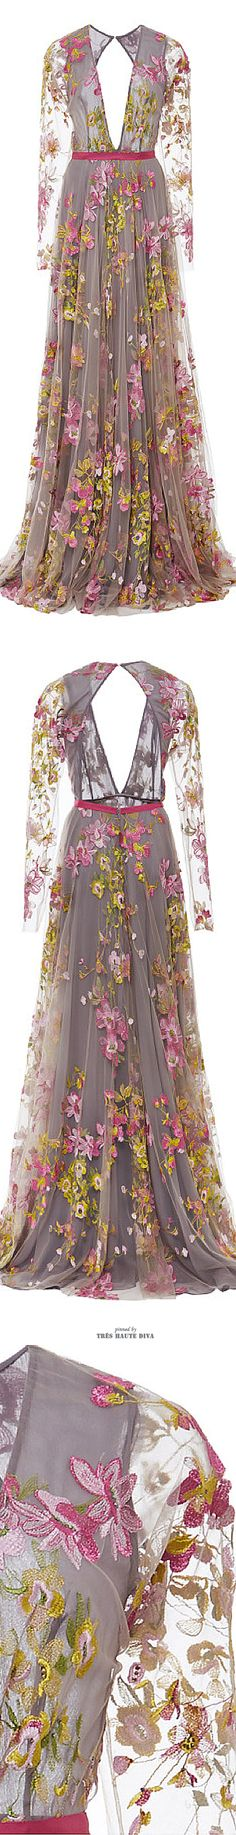 Naeem Khan Floral Embroidered Long Sleeve Gown ♔ SS 2015